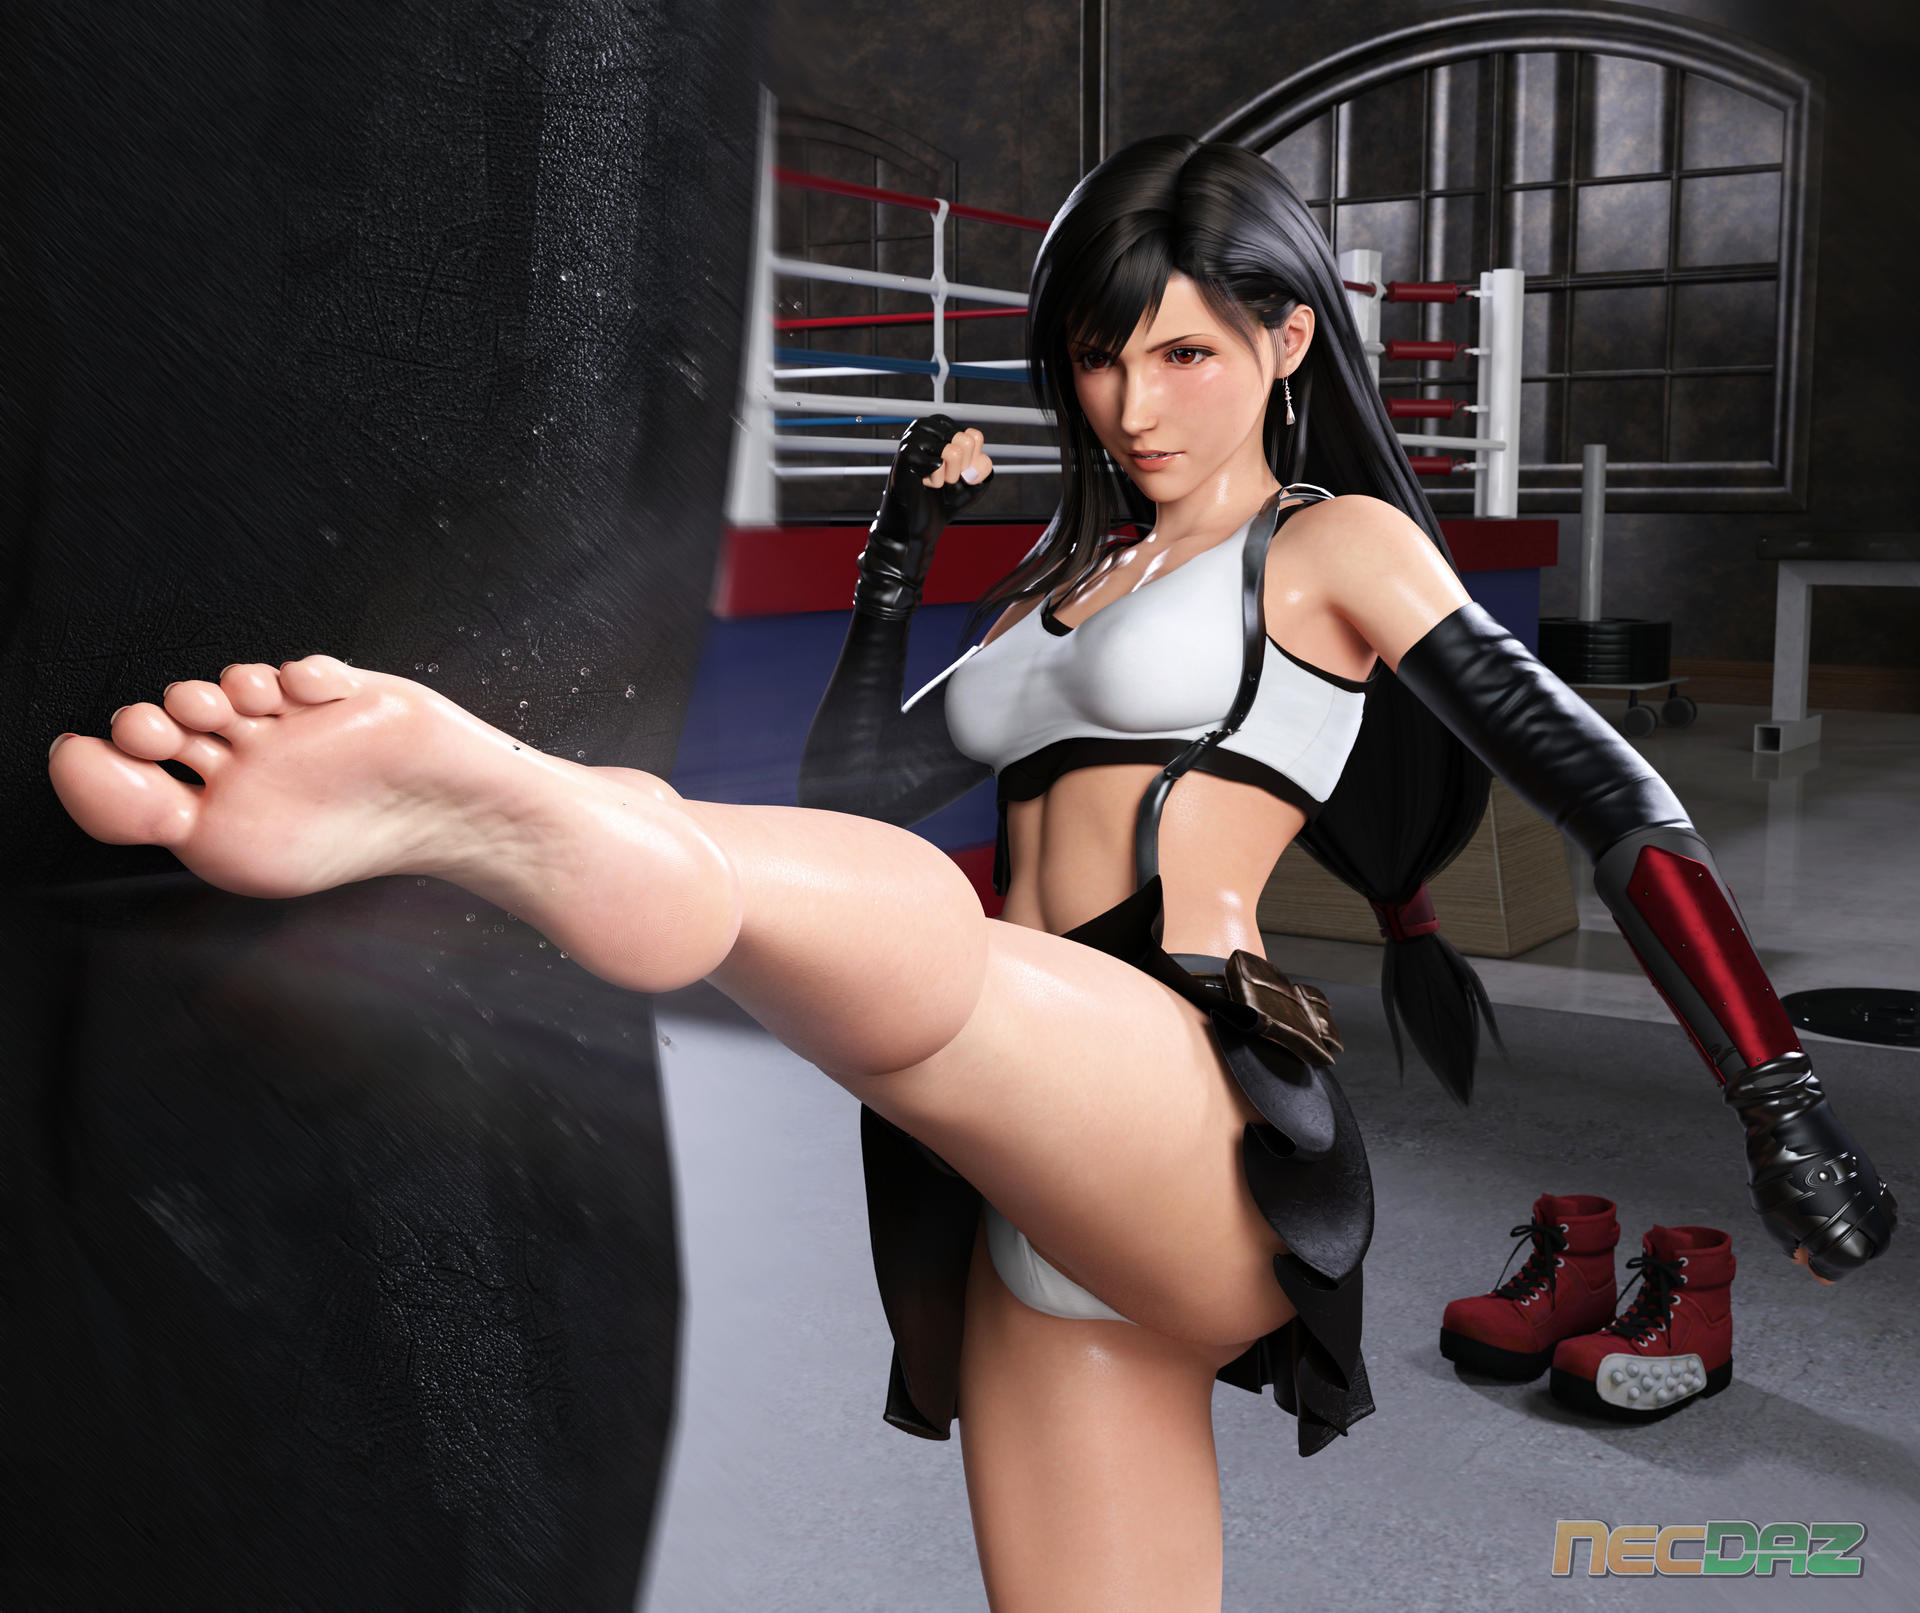 Monthly Render Tifa Lockhart At The Gym By Necdaz91 On